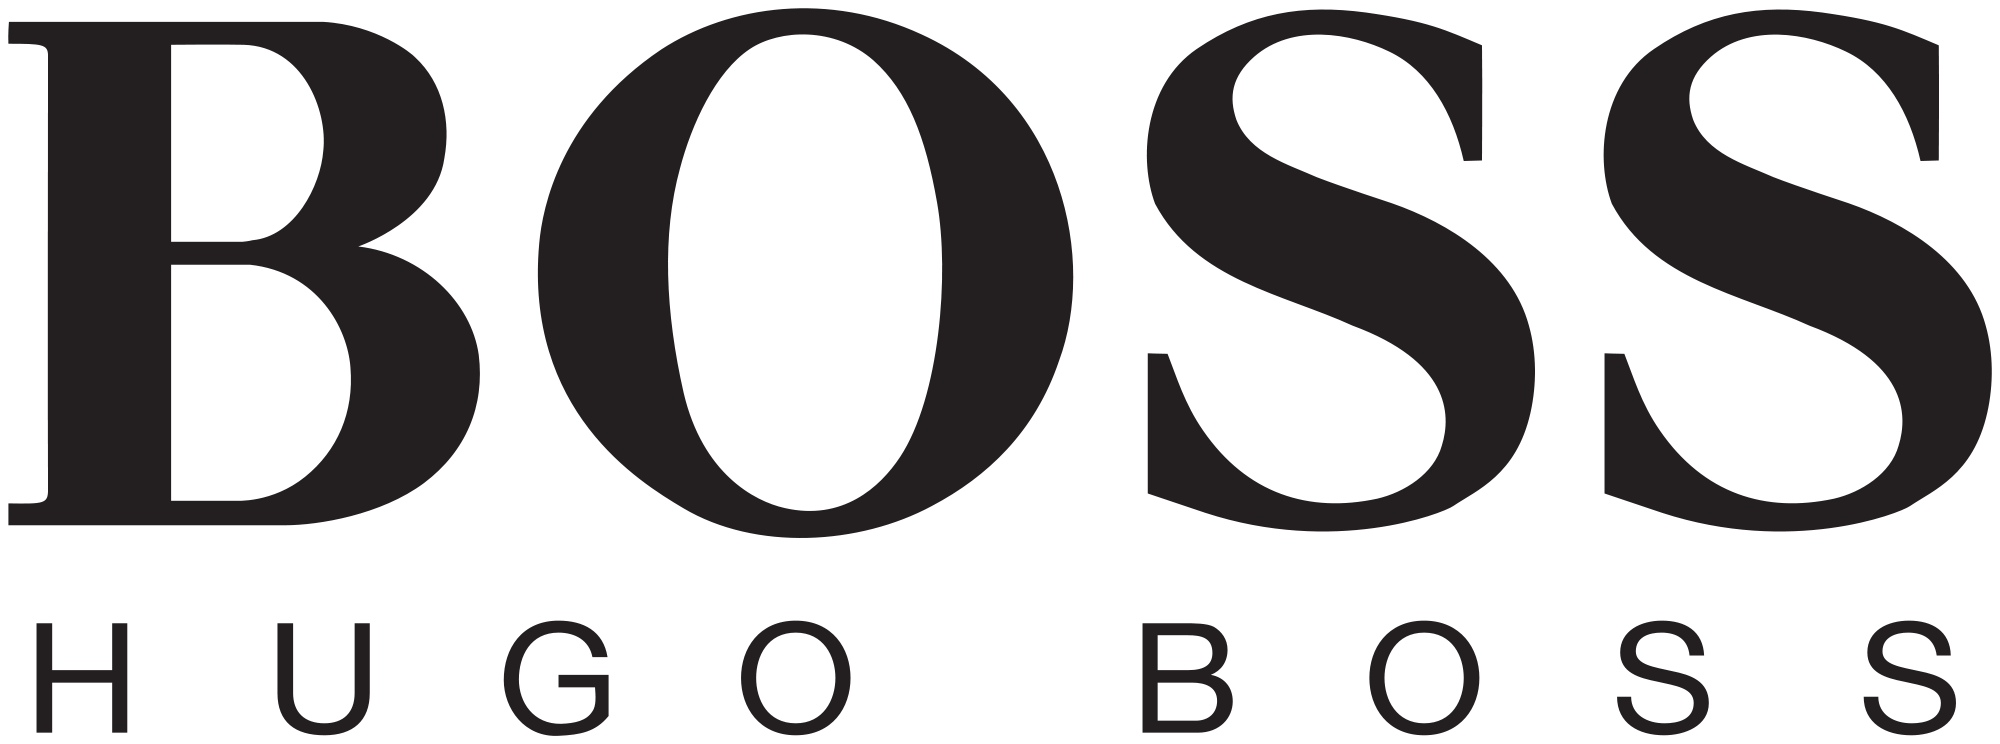 Order your original replacement Hugo Boss watch straps at Watchstraps-batteries.com